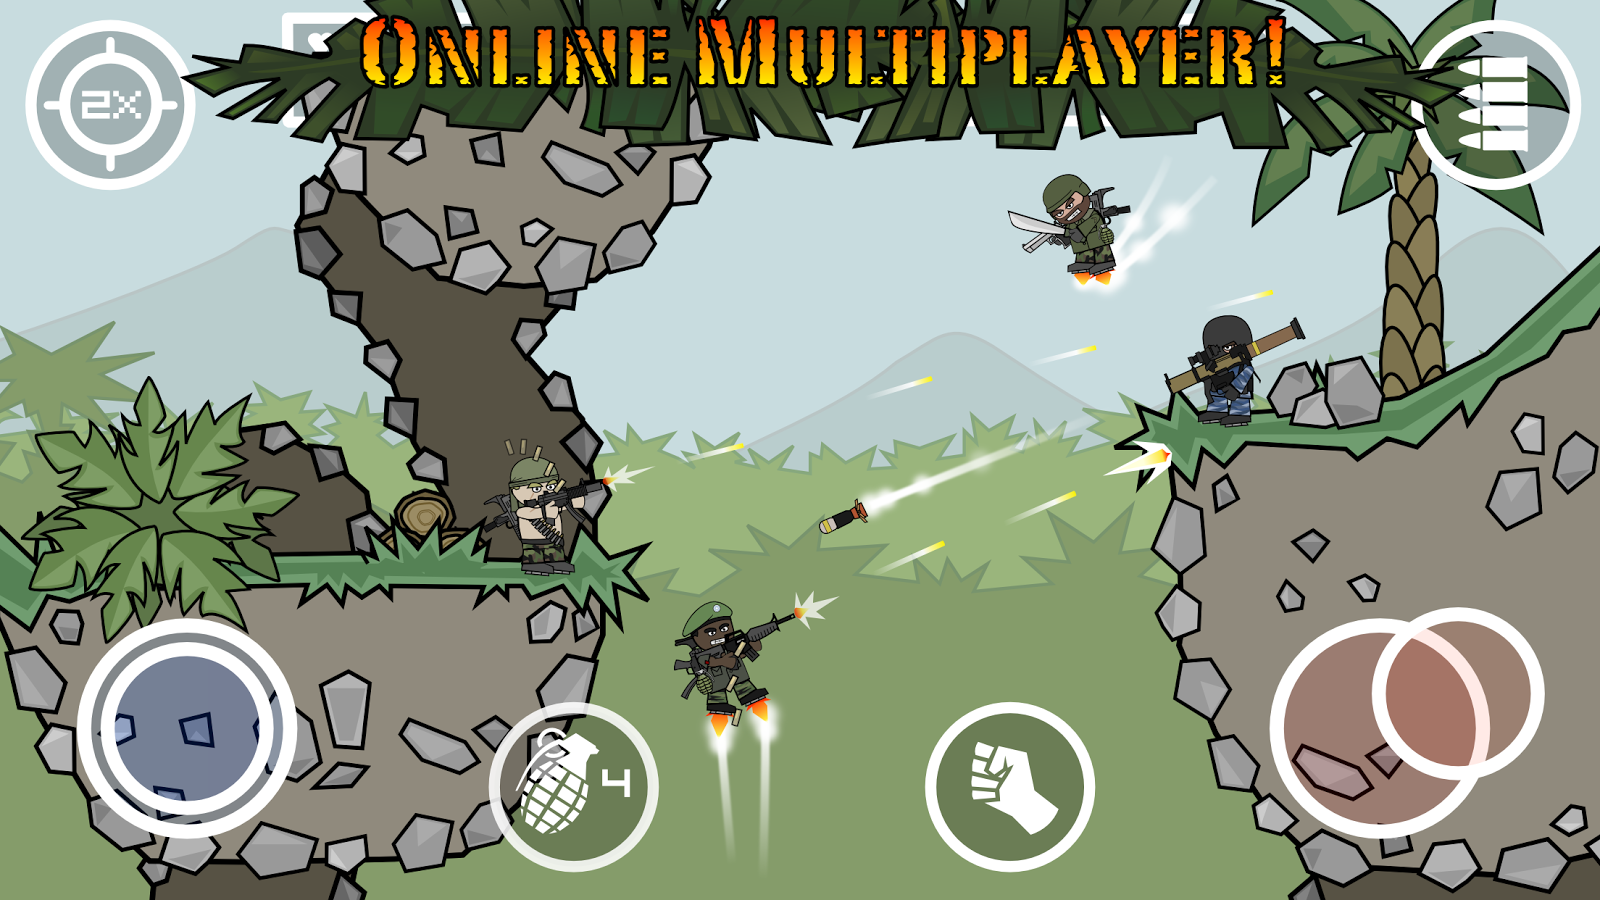 mini militia game tips - http://onlinebap.blogspot.com/